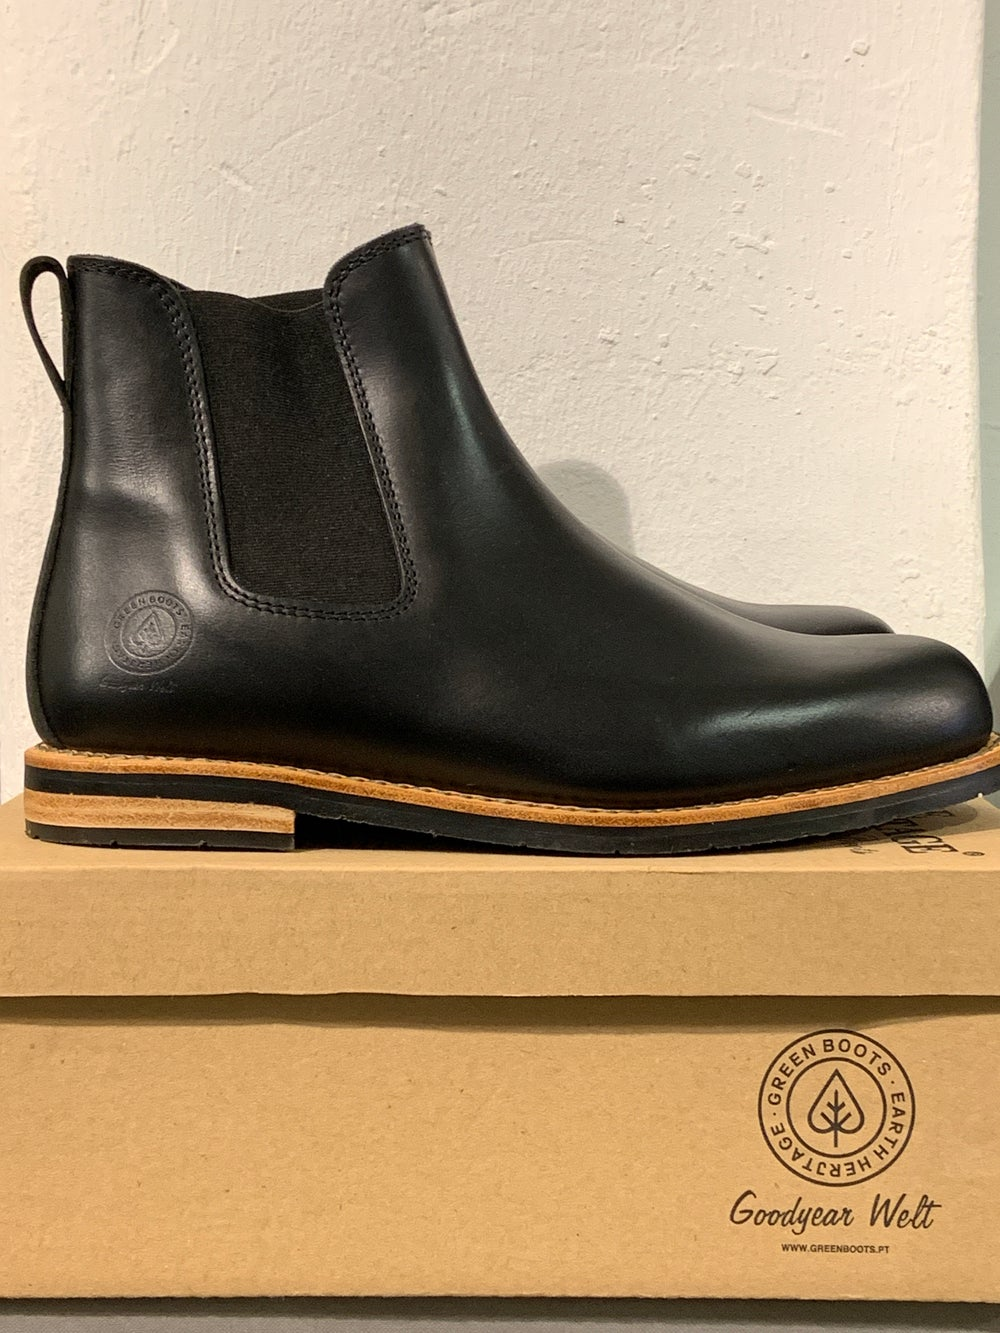 Image of Chelsea Boots 004.02 True Heritage Boots